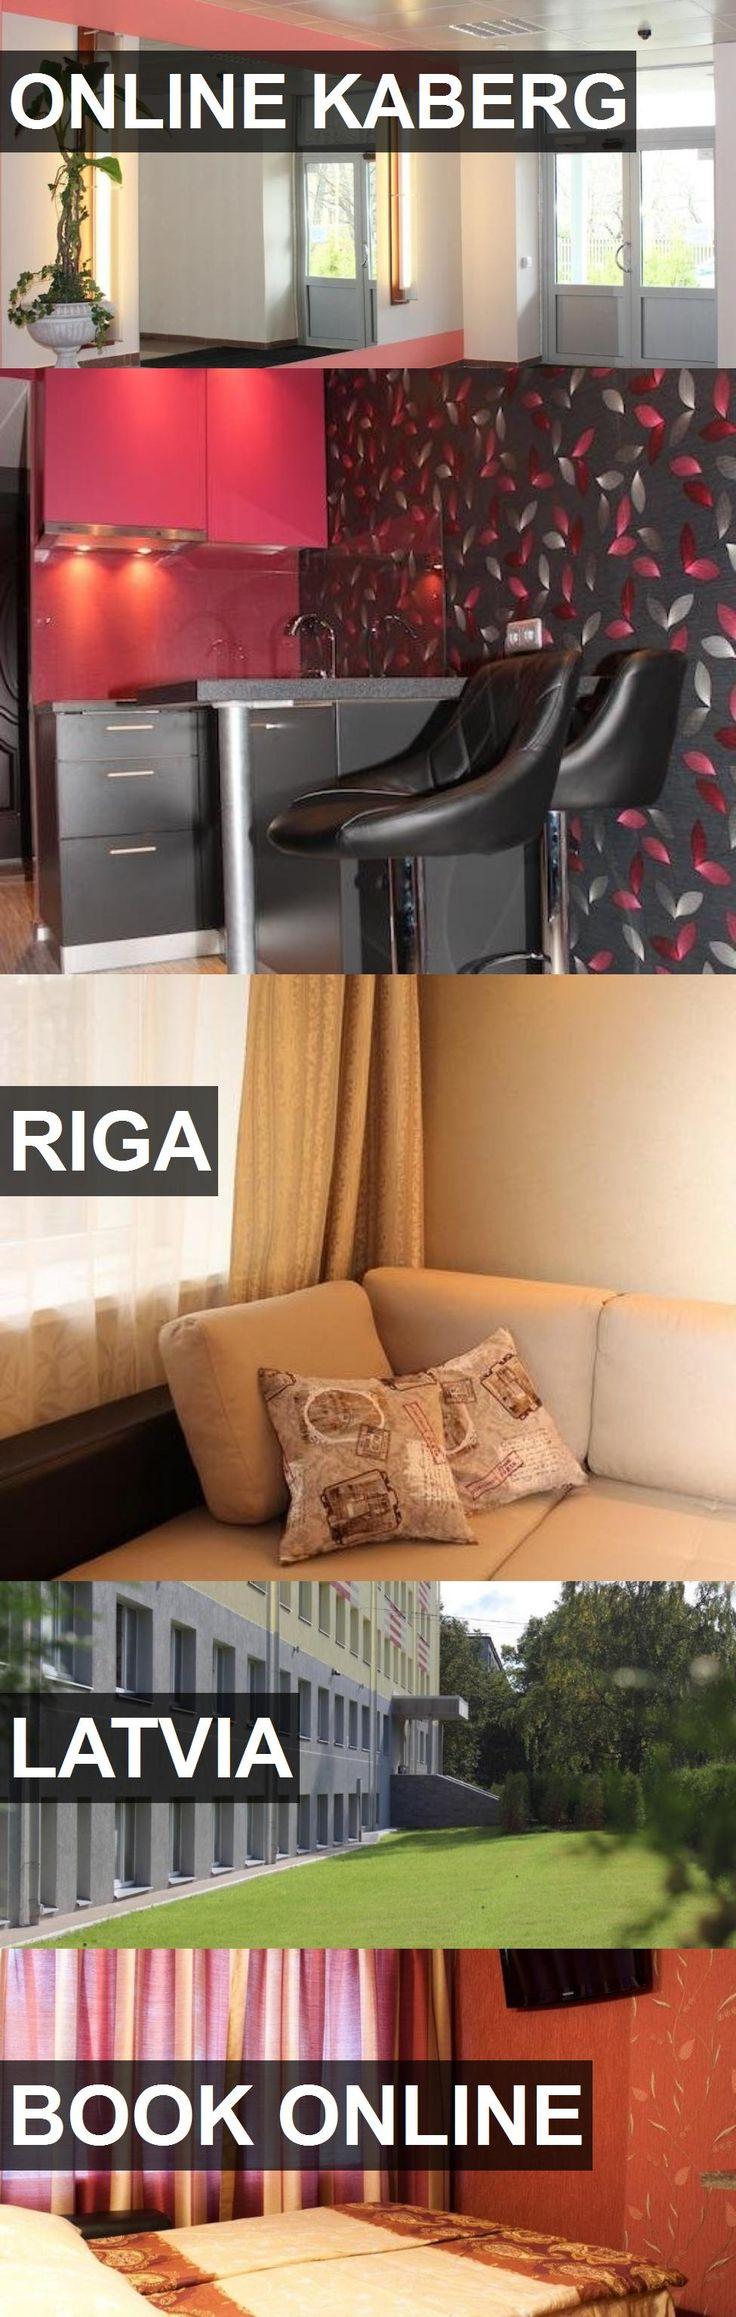 Hotel ONLINE KABERG in Riga, Latvia. For more information, photos, reviews and best prices please follow the link. #Latvia #Riga #travel #vacation #hotel